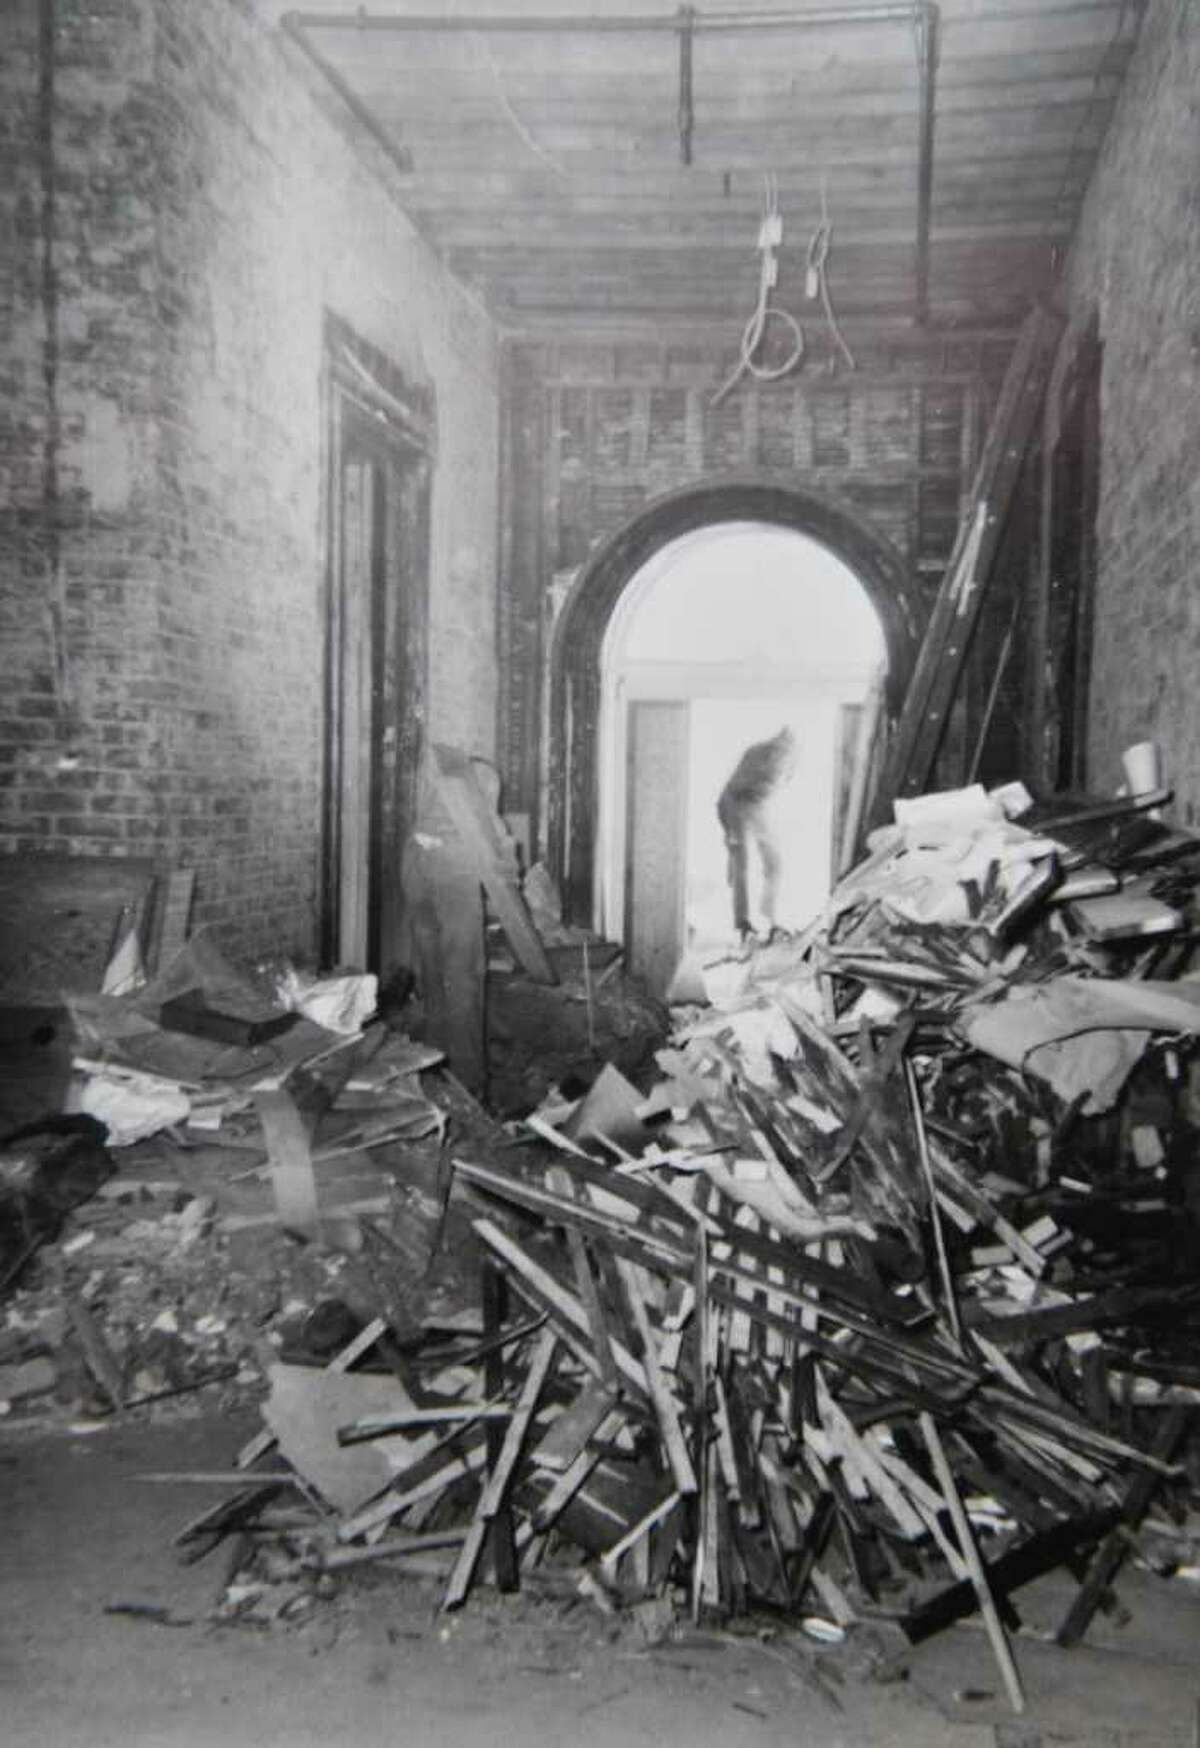 Photo courtesy of NYS OGS: Photograph of damage to the NYS Executive Mansion from the 1961 fire. For Times Union story.